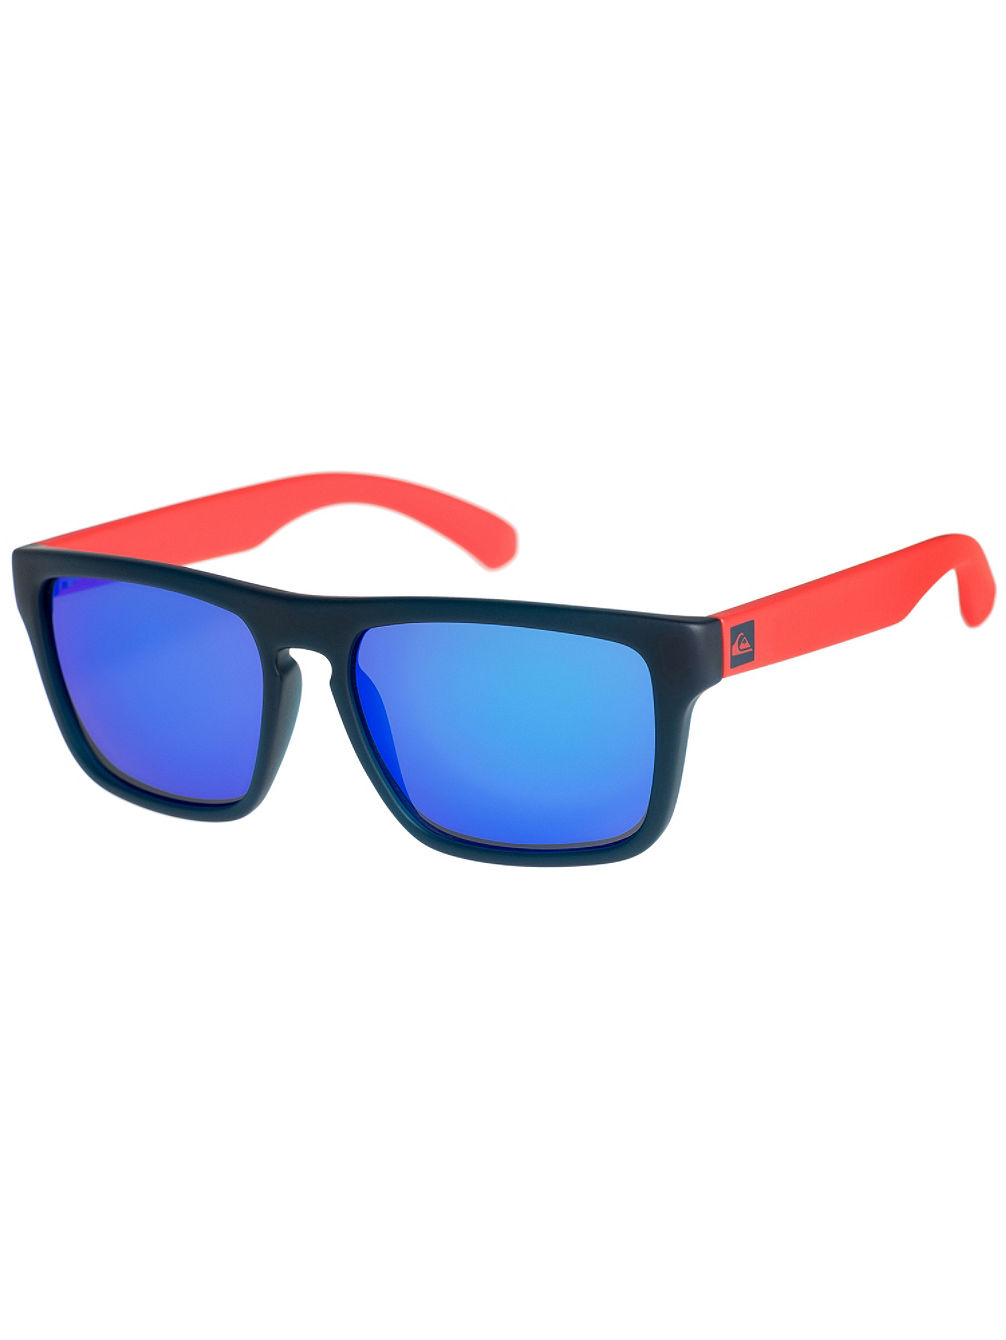 quiksilver-small-fry-soft-touch-navy-red